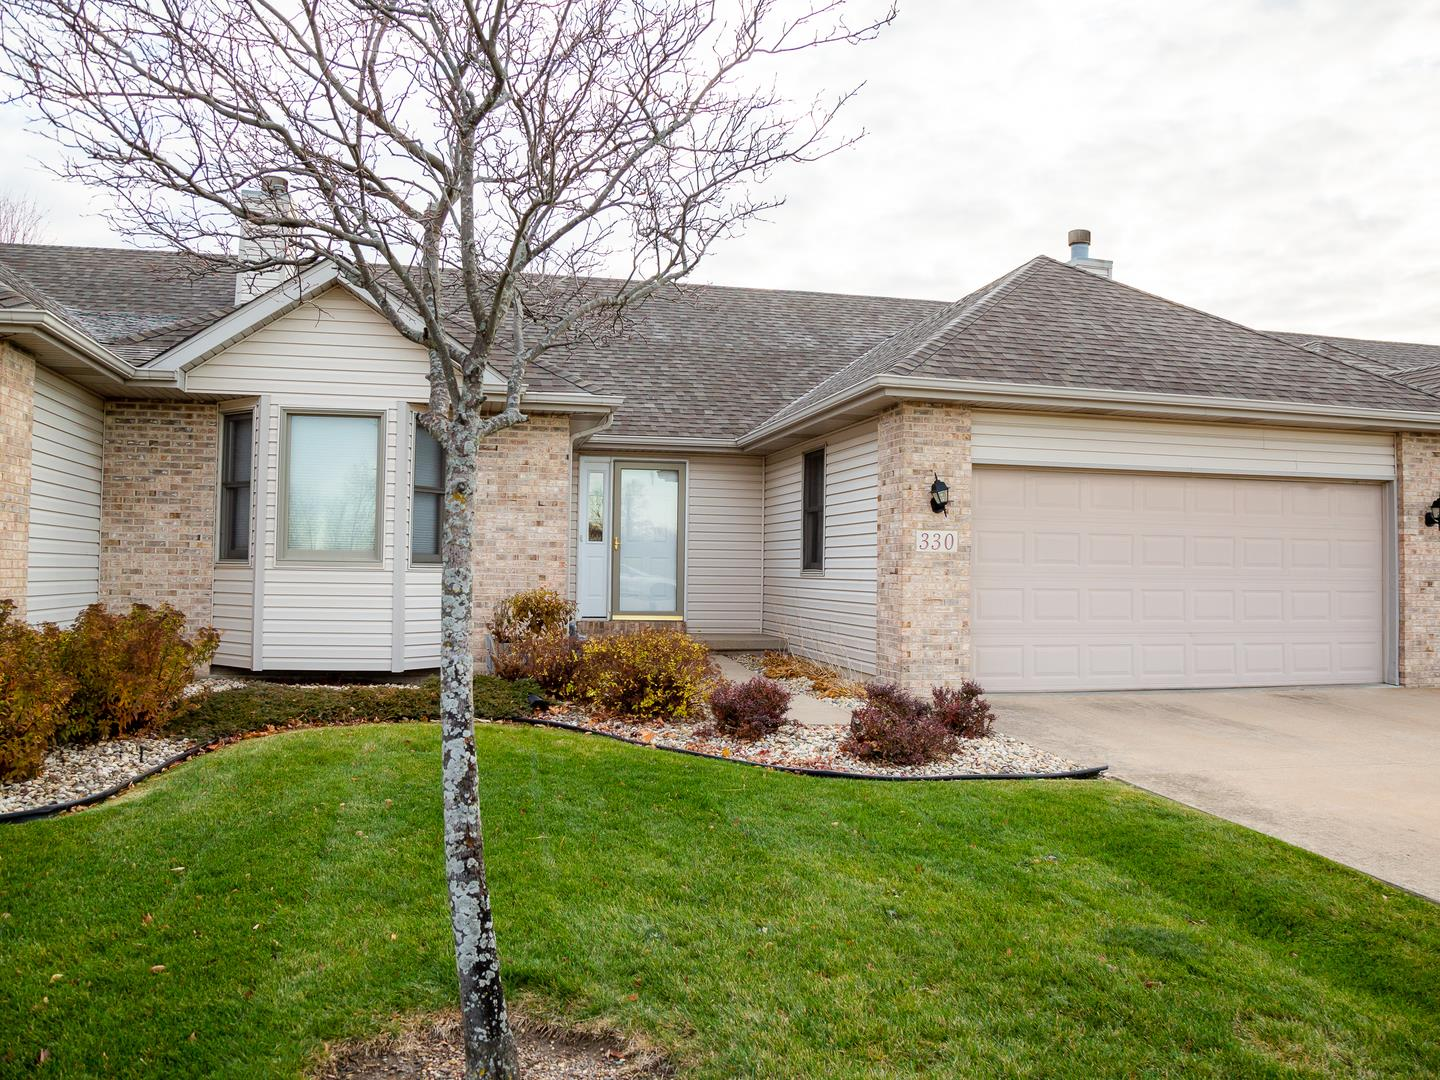 330 Heritage Avenue, Oglesby, IL 61348 - #: 10934848